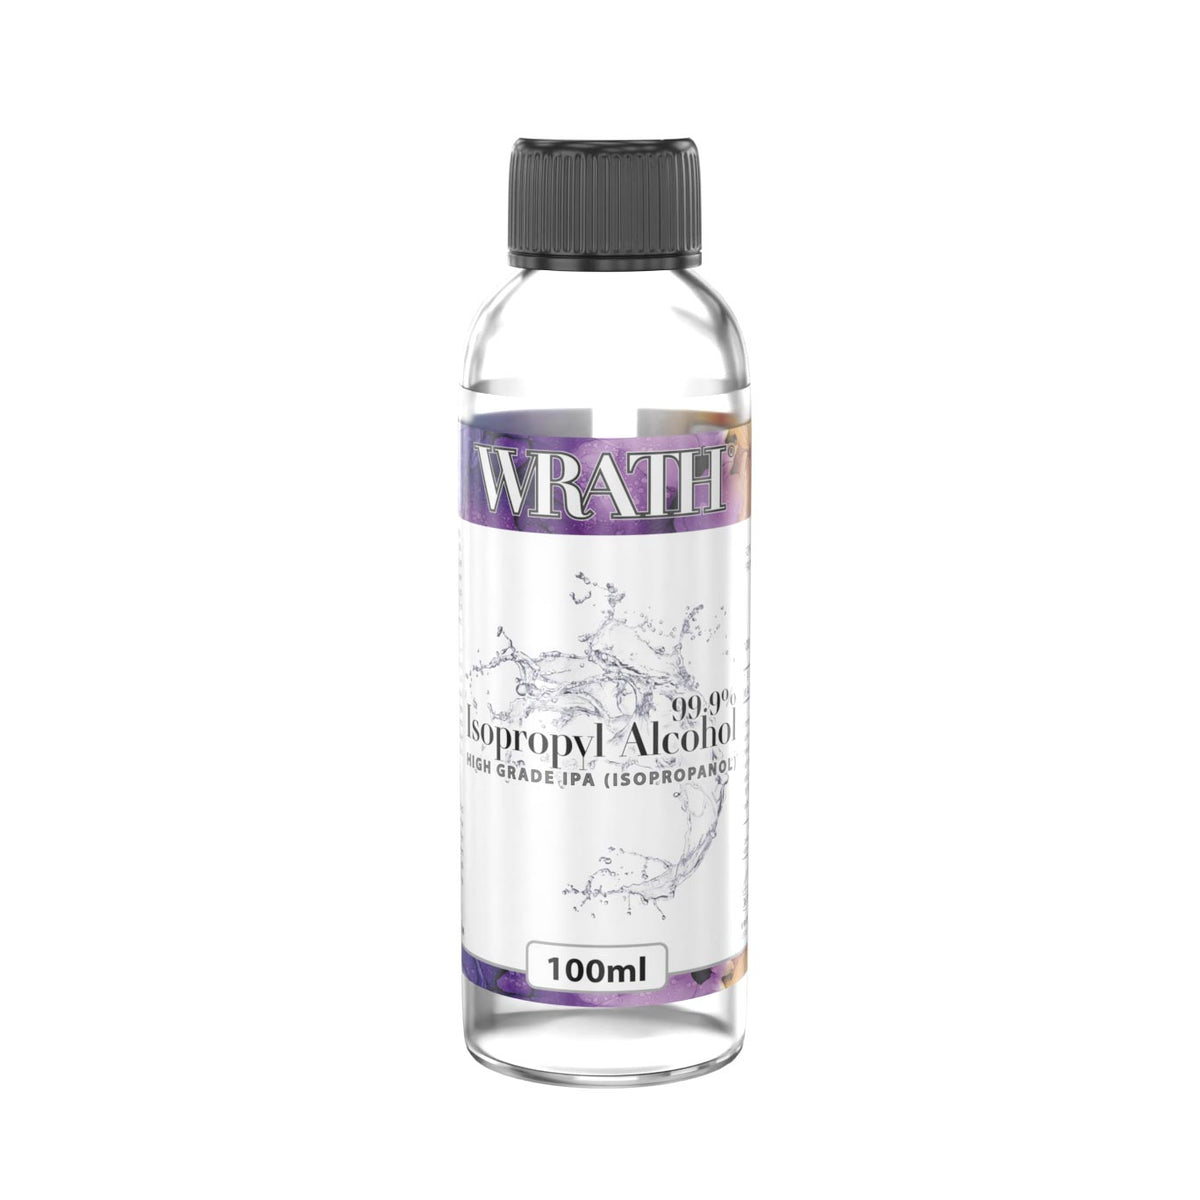 WRATH Cosmetics 99.9% Isopropyl Alcohol - 100ml